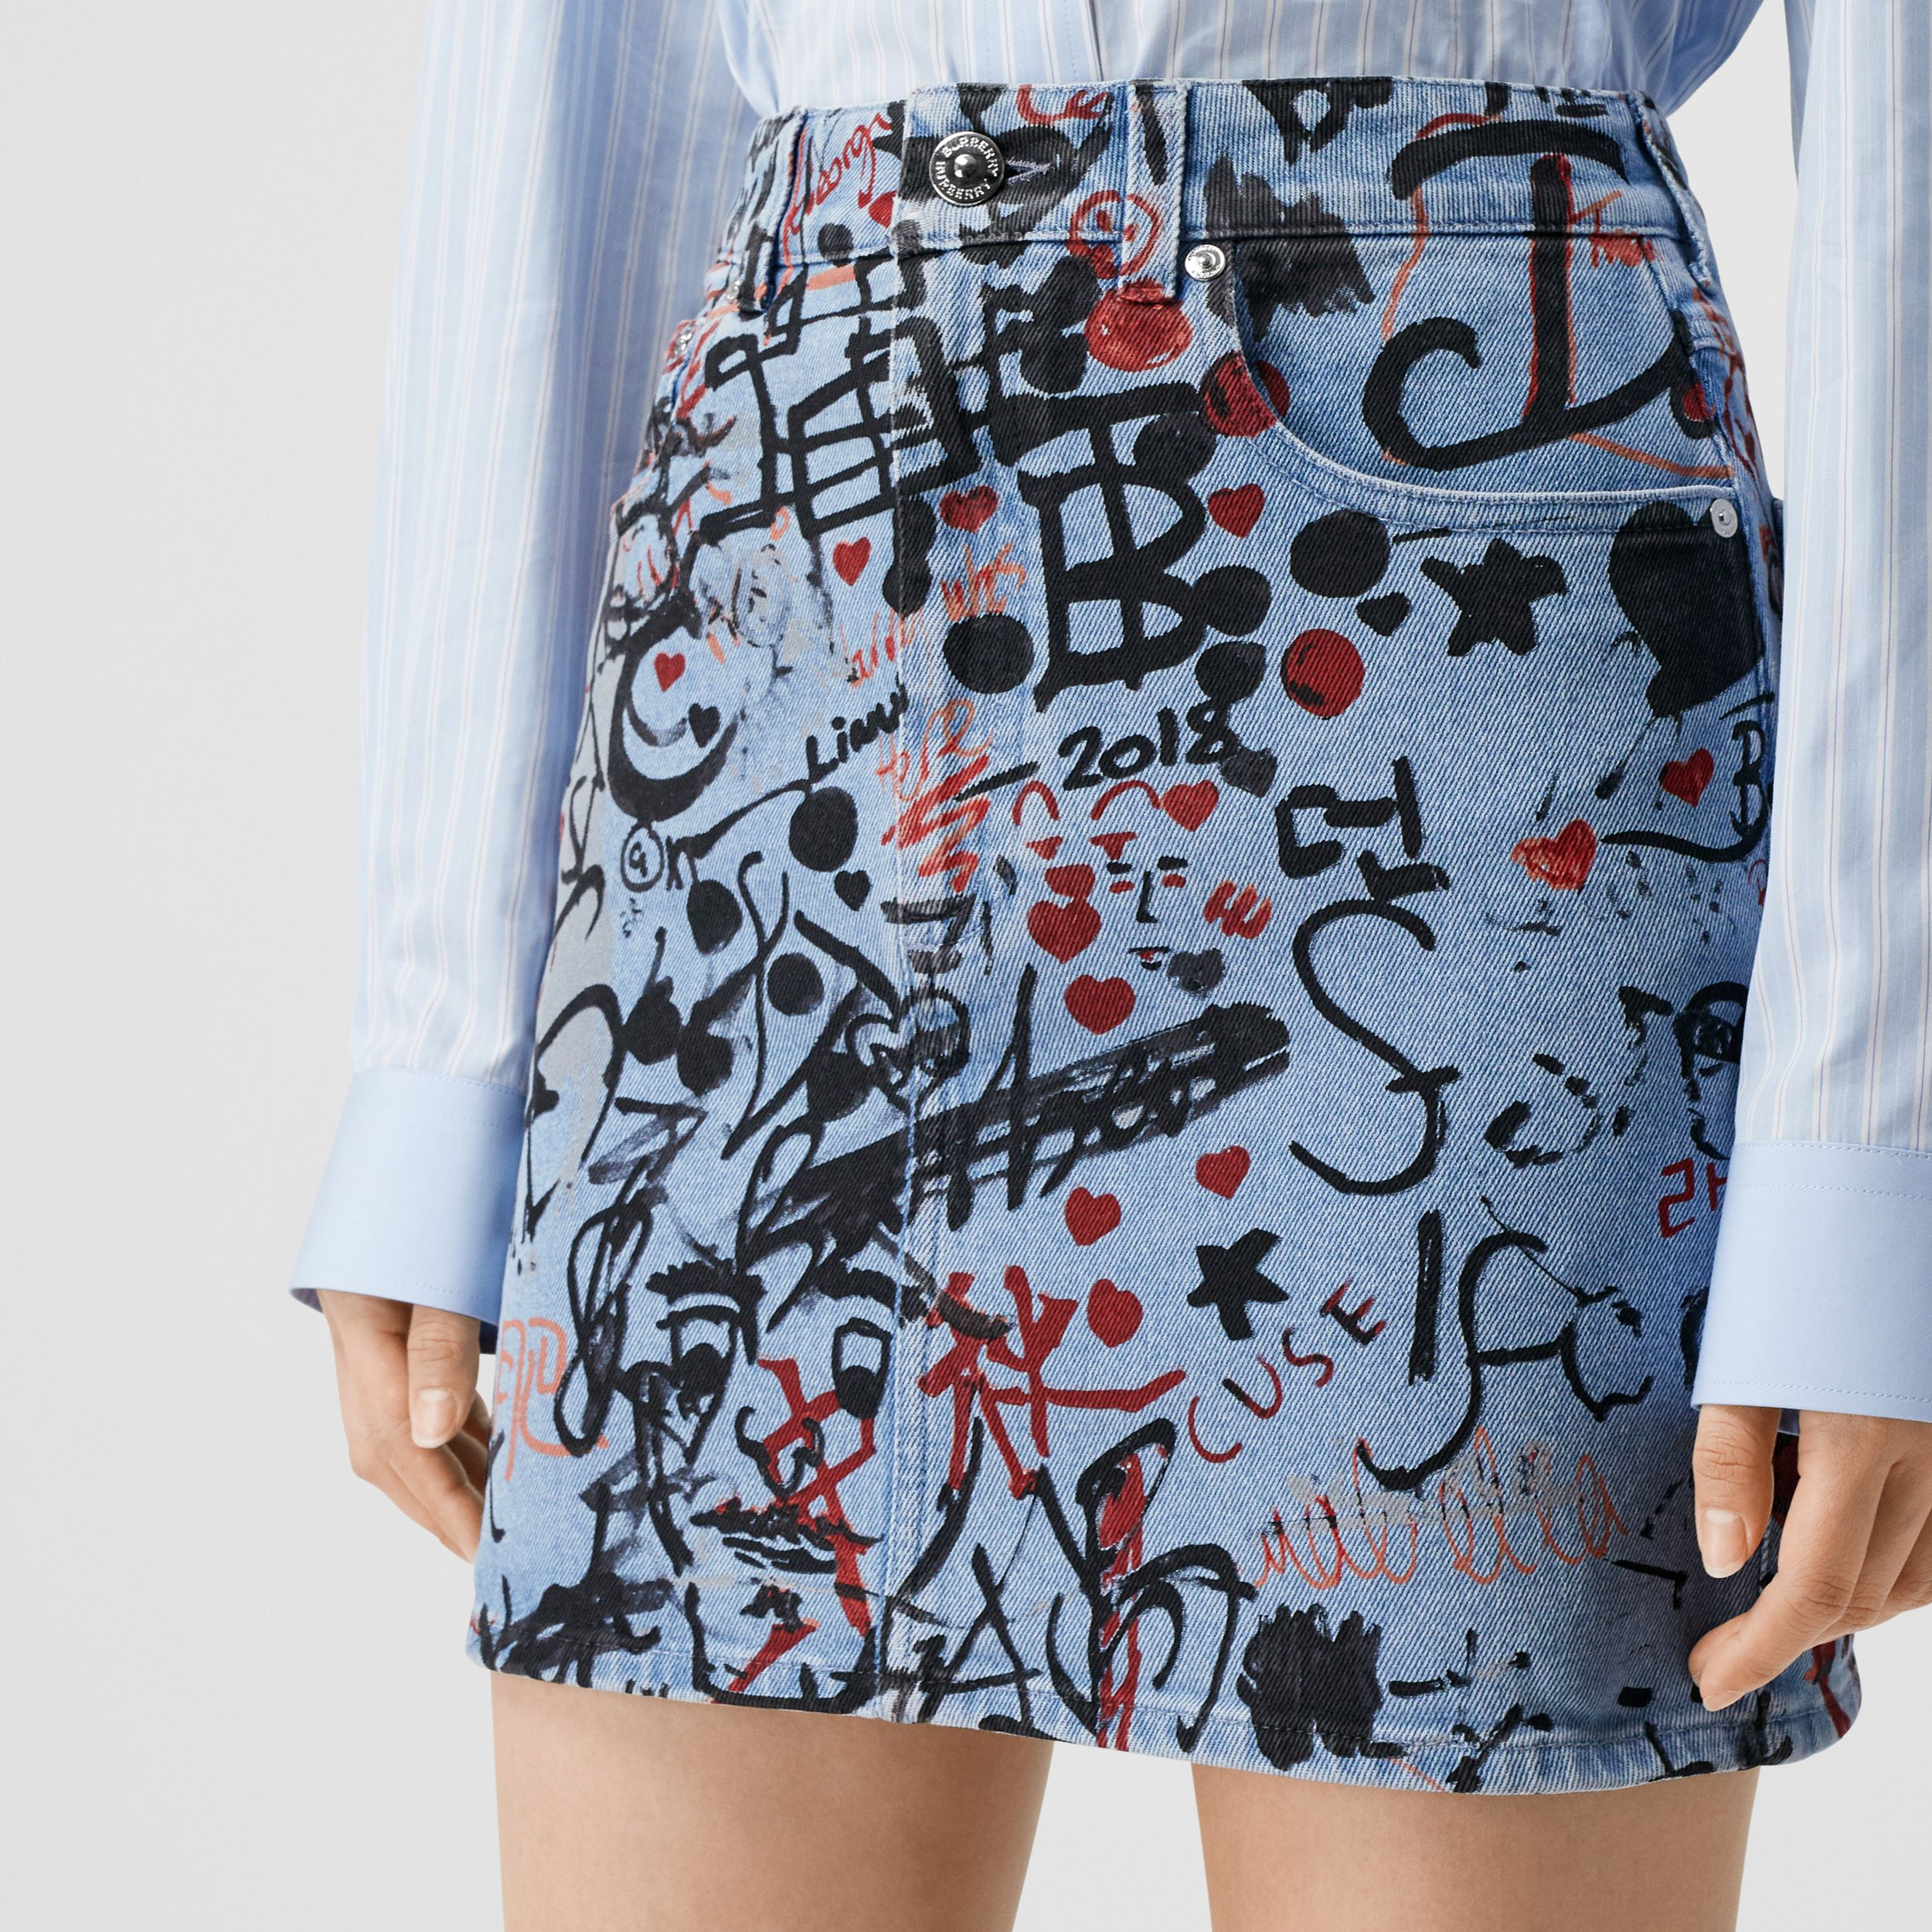 Graffiti Print Washed Denim Mini Skirt in Light Indigo - Women | Burberry - 2